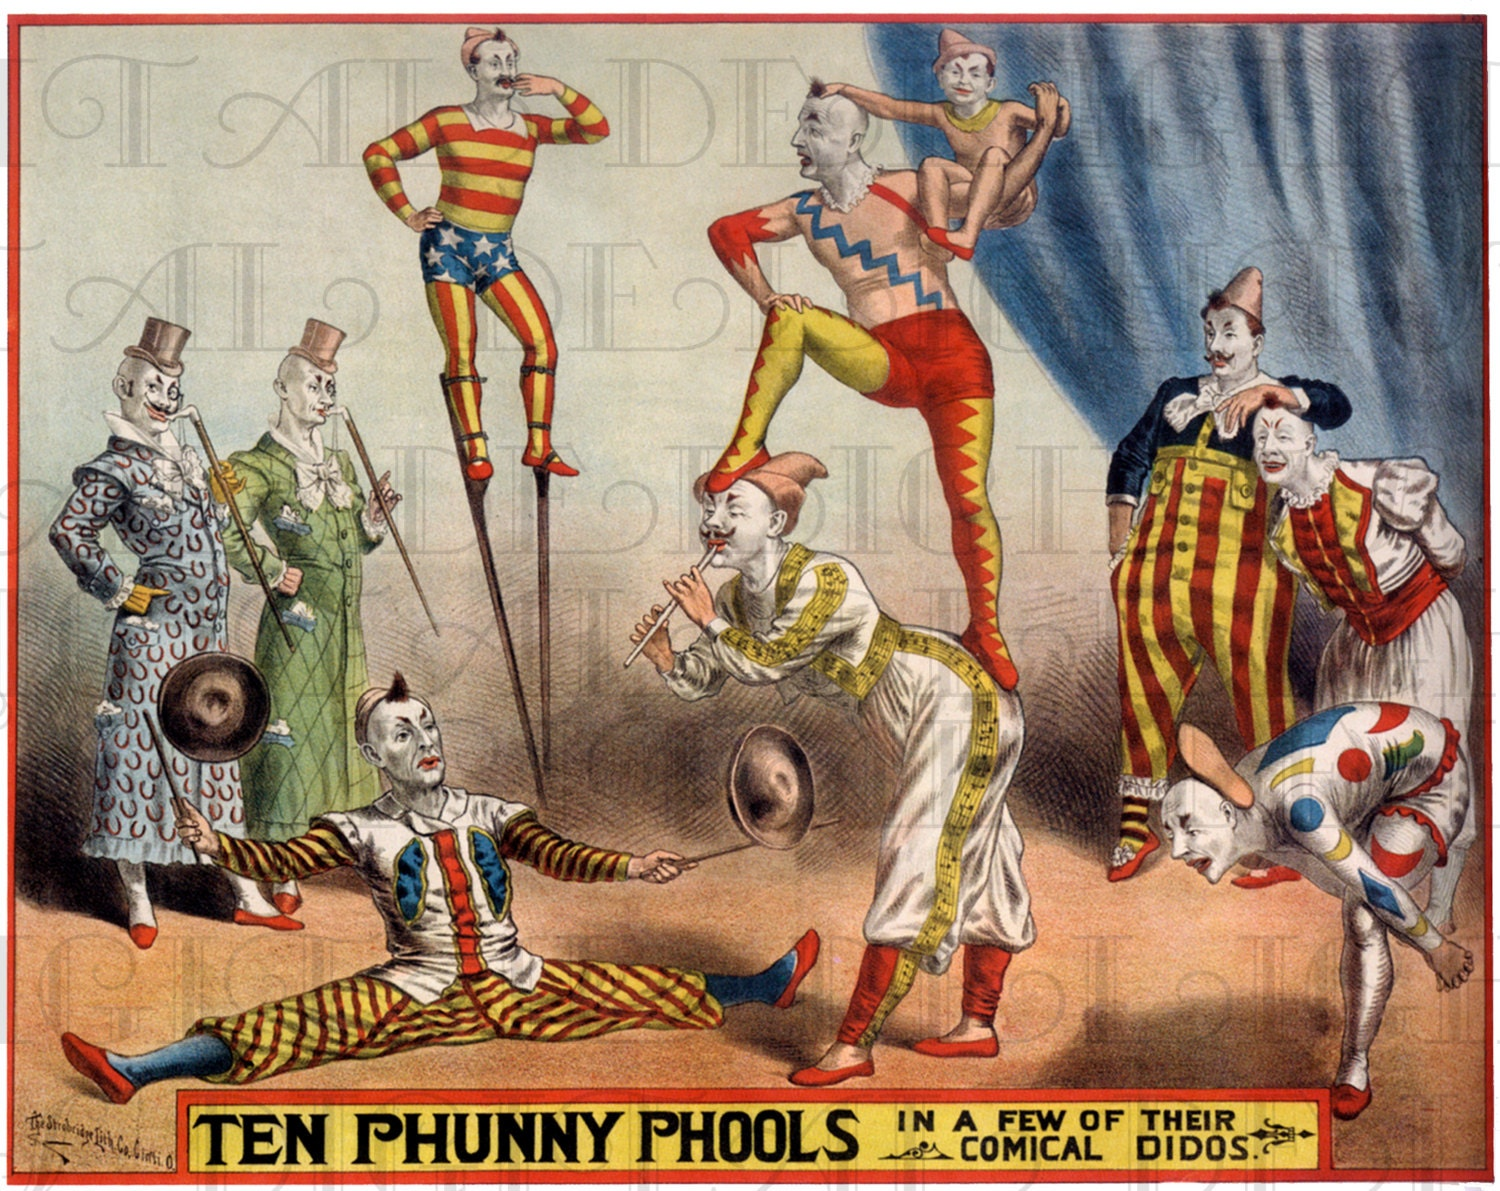 Antique CIRCUS Poster Vintage Clowns Illustration